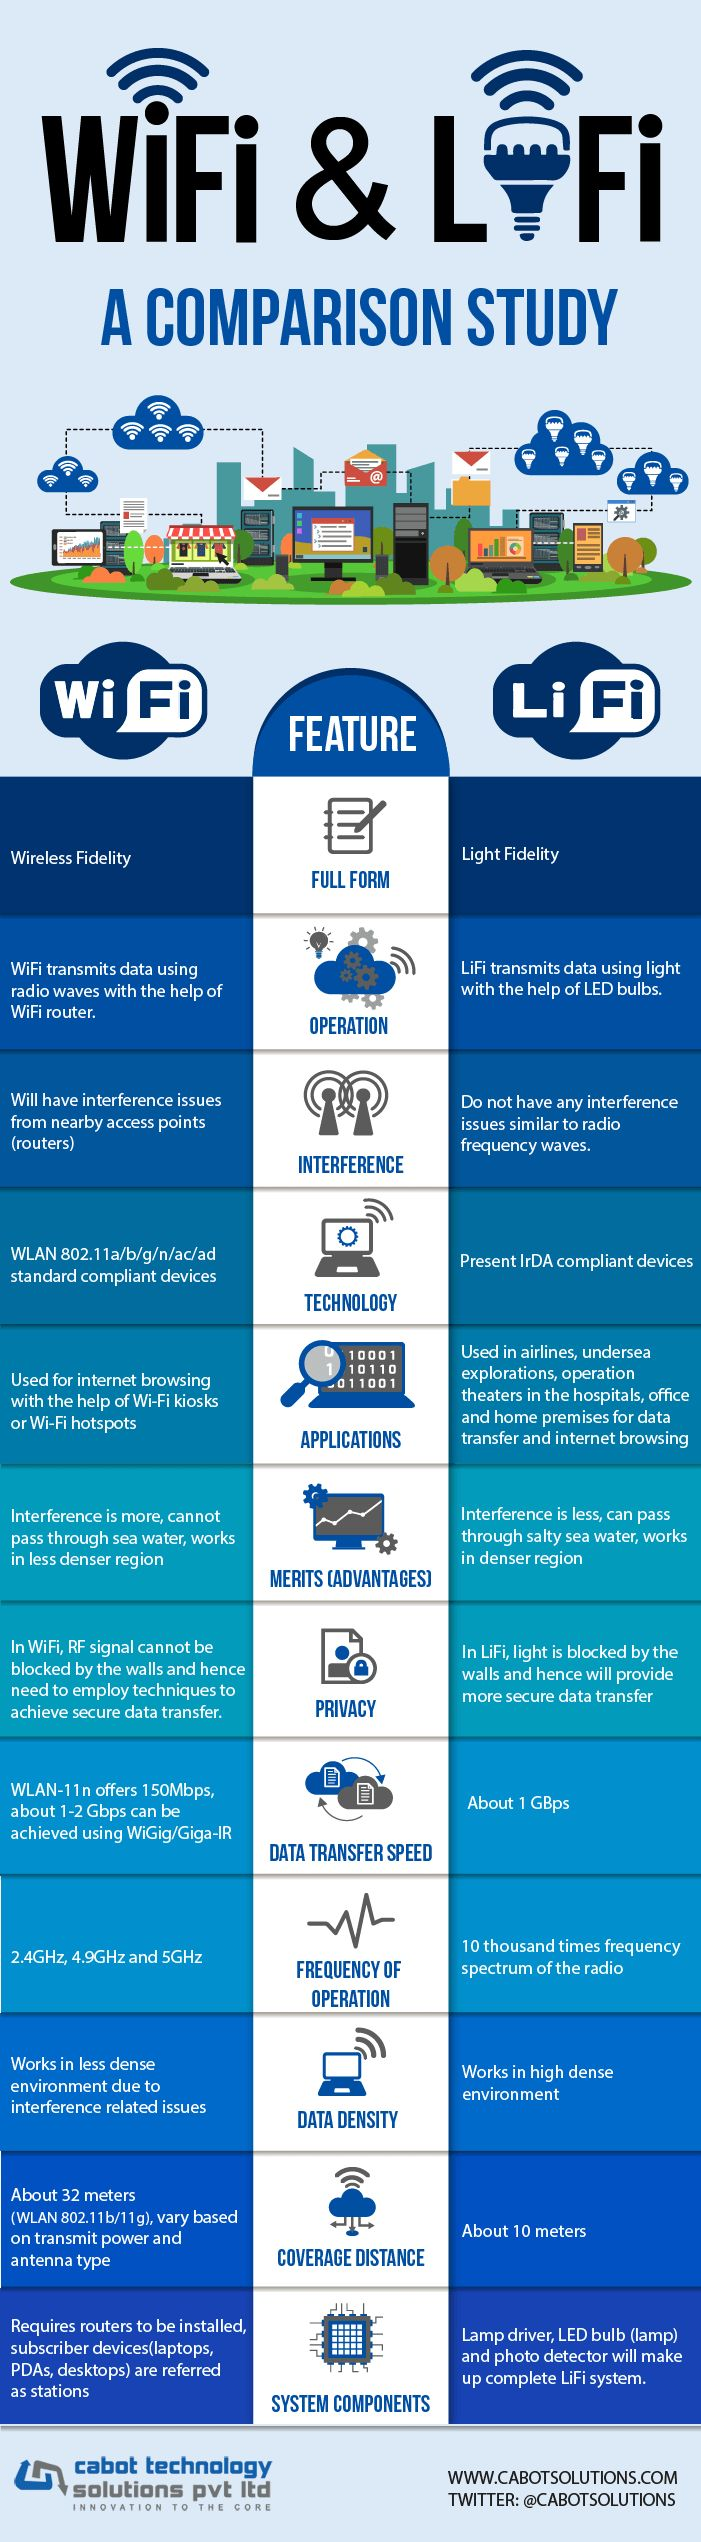 Distinguishing Features of WiFi and LiFi